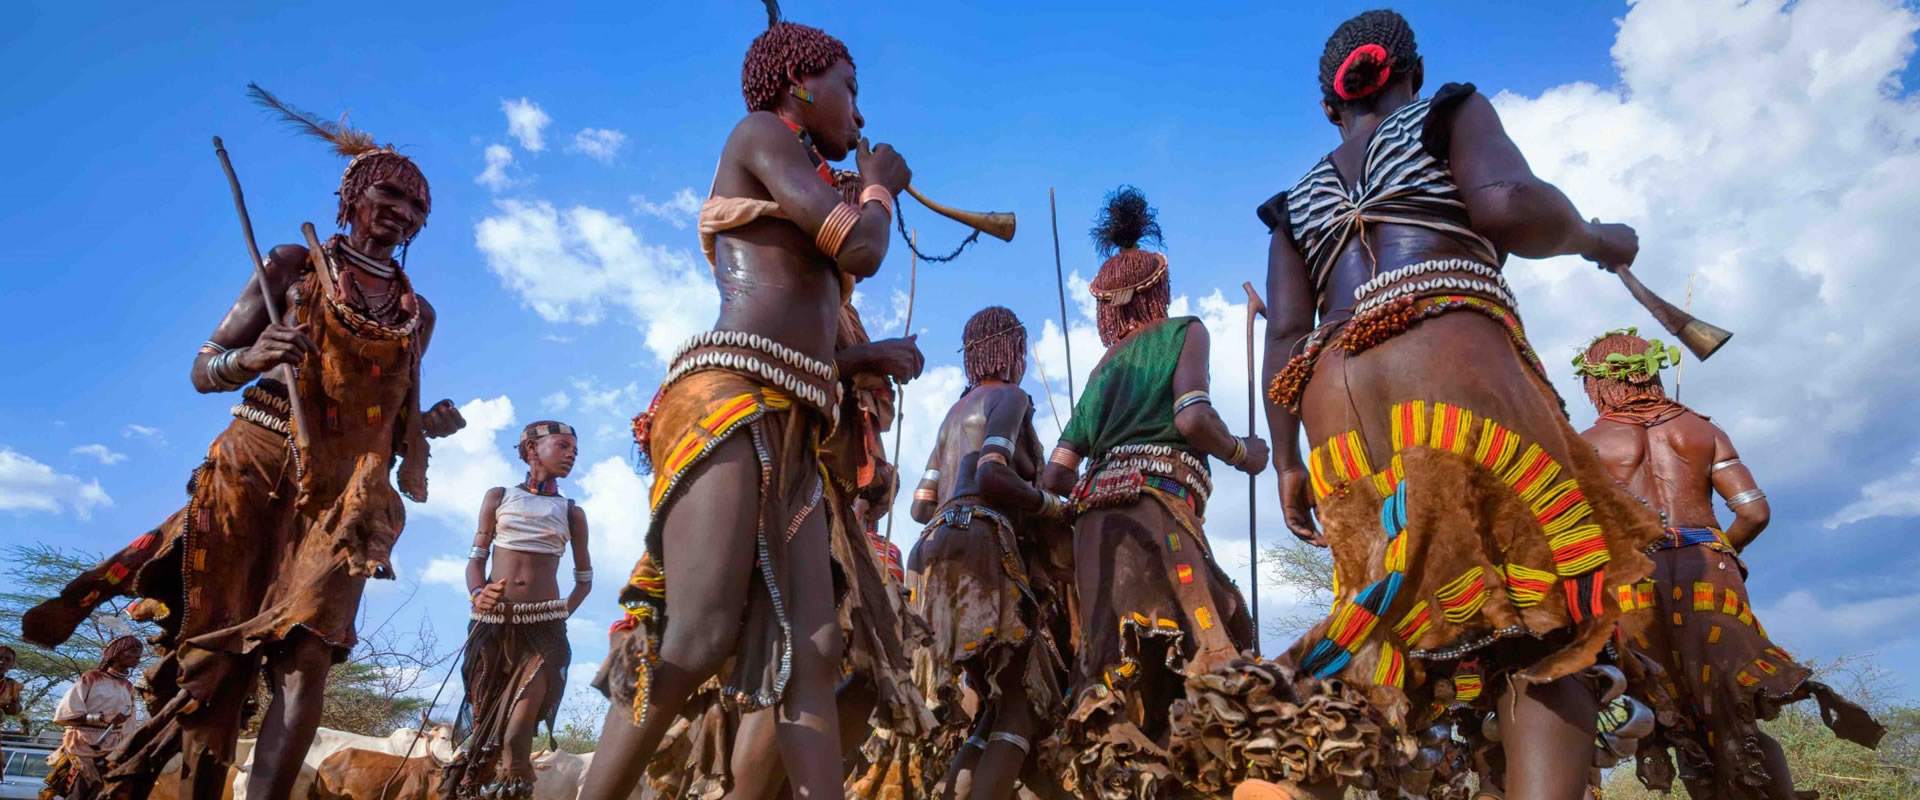 16 days ethiopian grand tribal and cultural experience